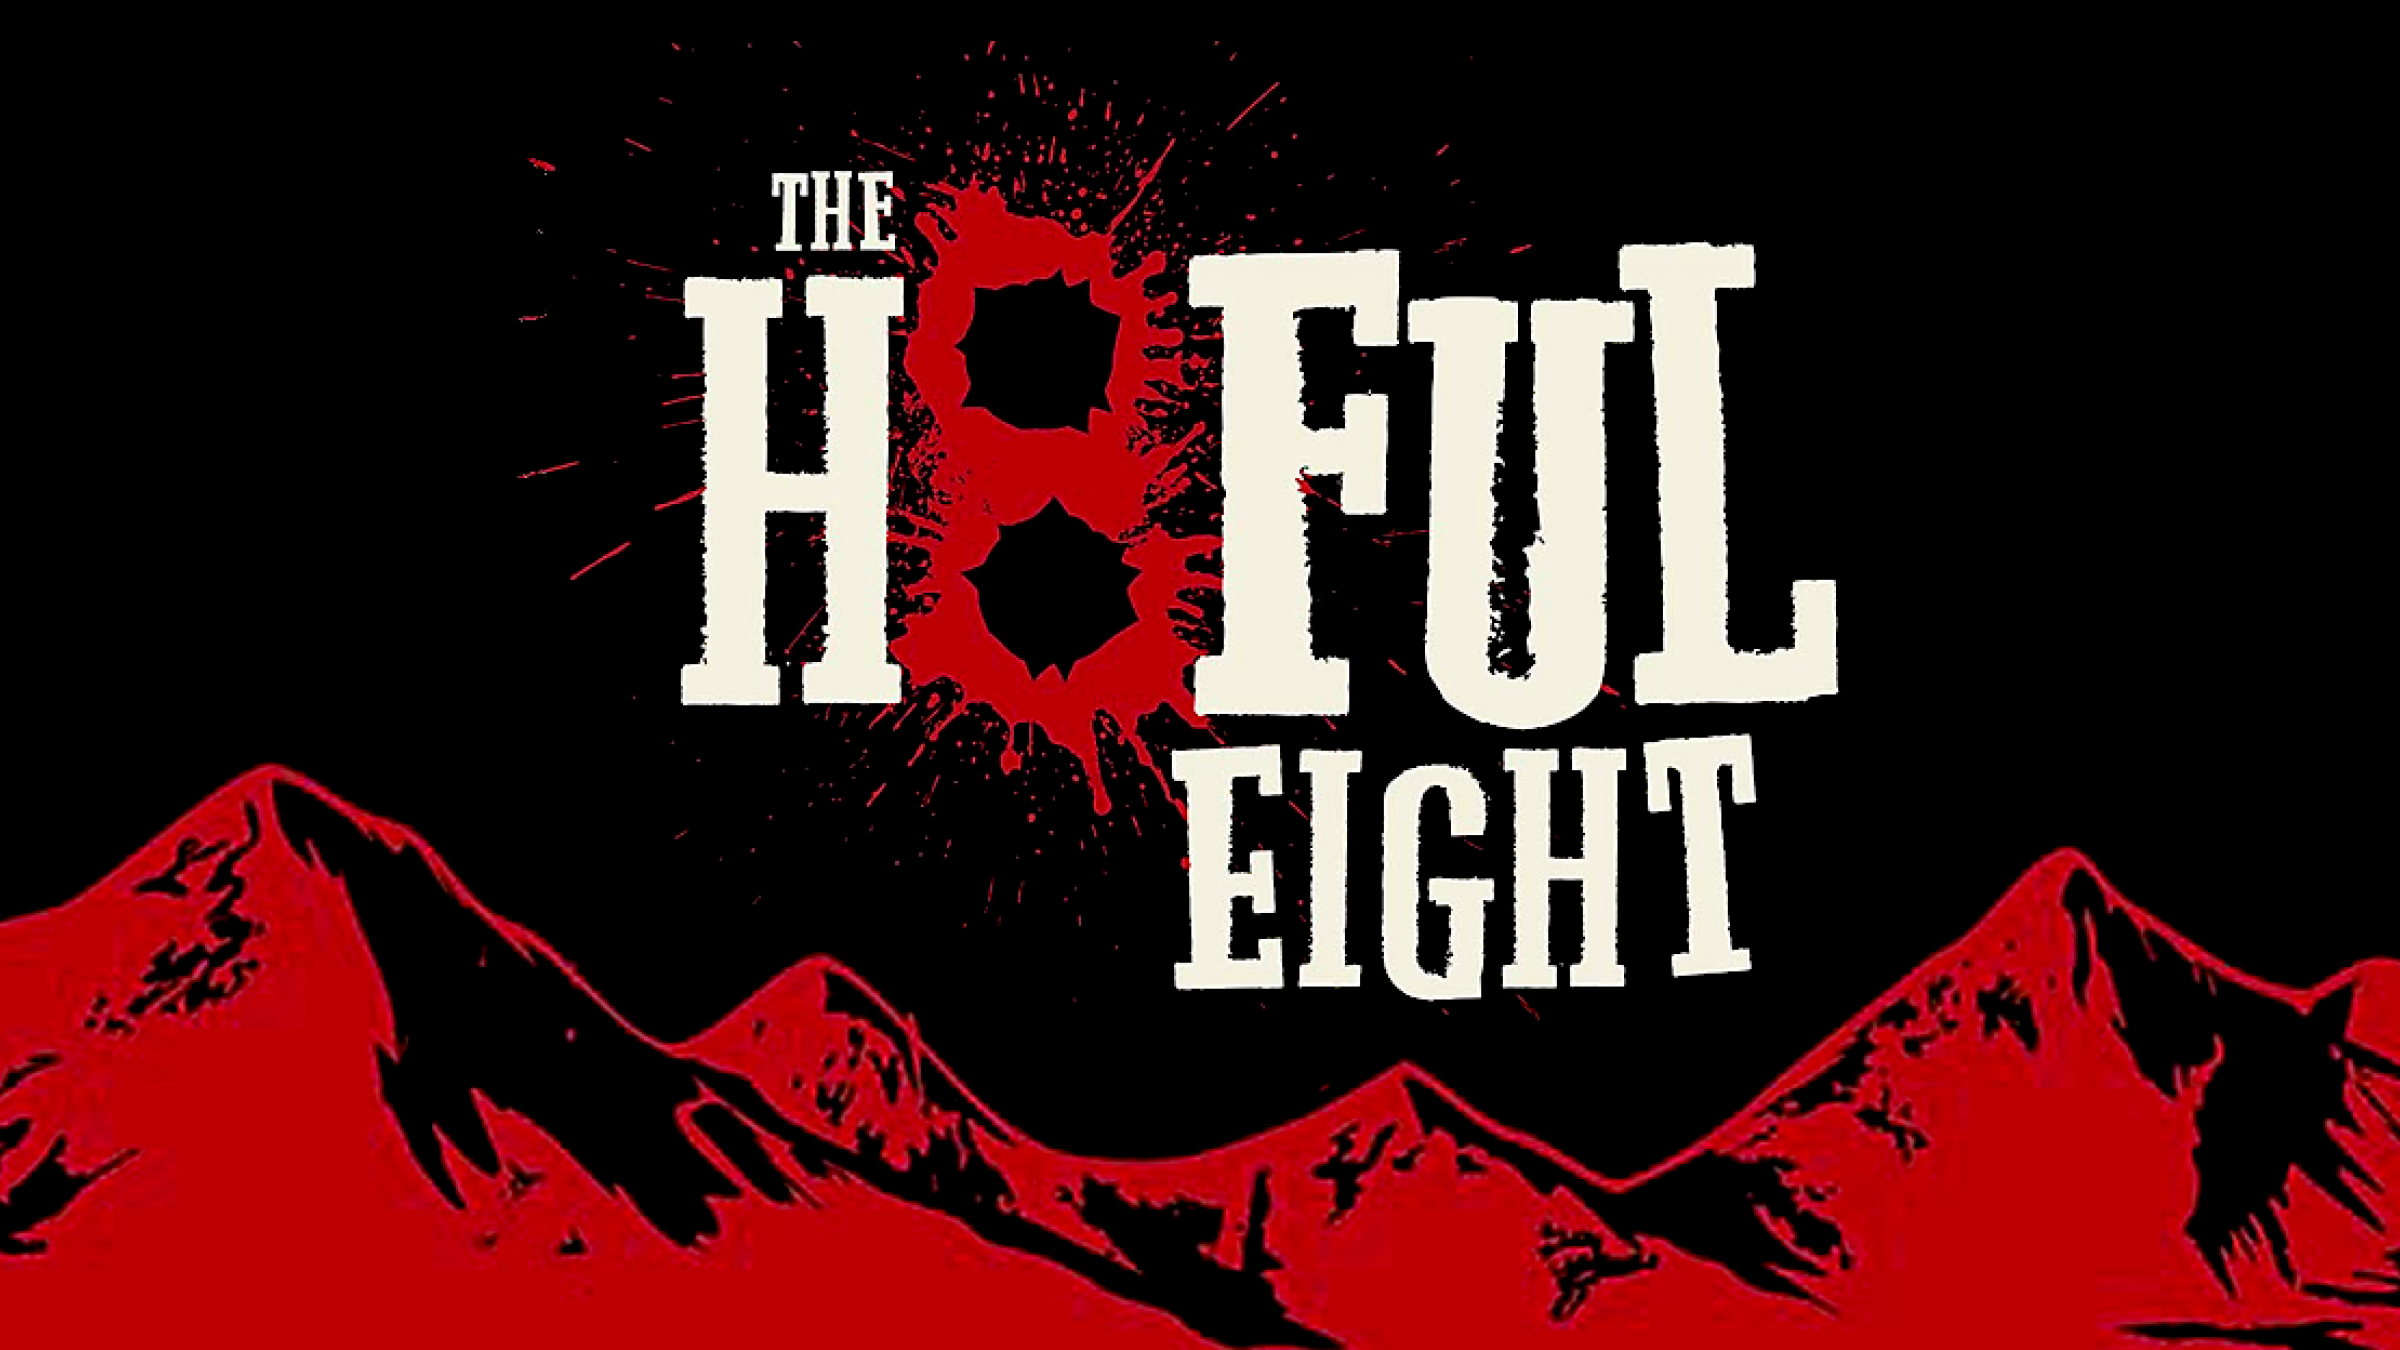 http://nofilmschool.com/sites/default/files/styles/facebook/public/hateful_eight_poster.png?itok=eoiICZ4U